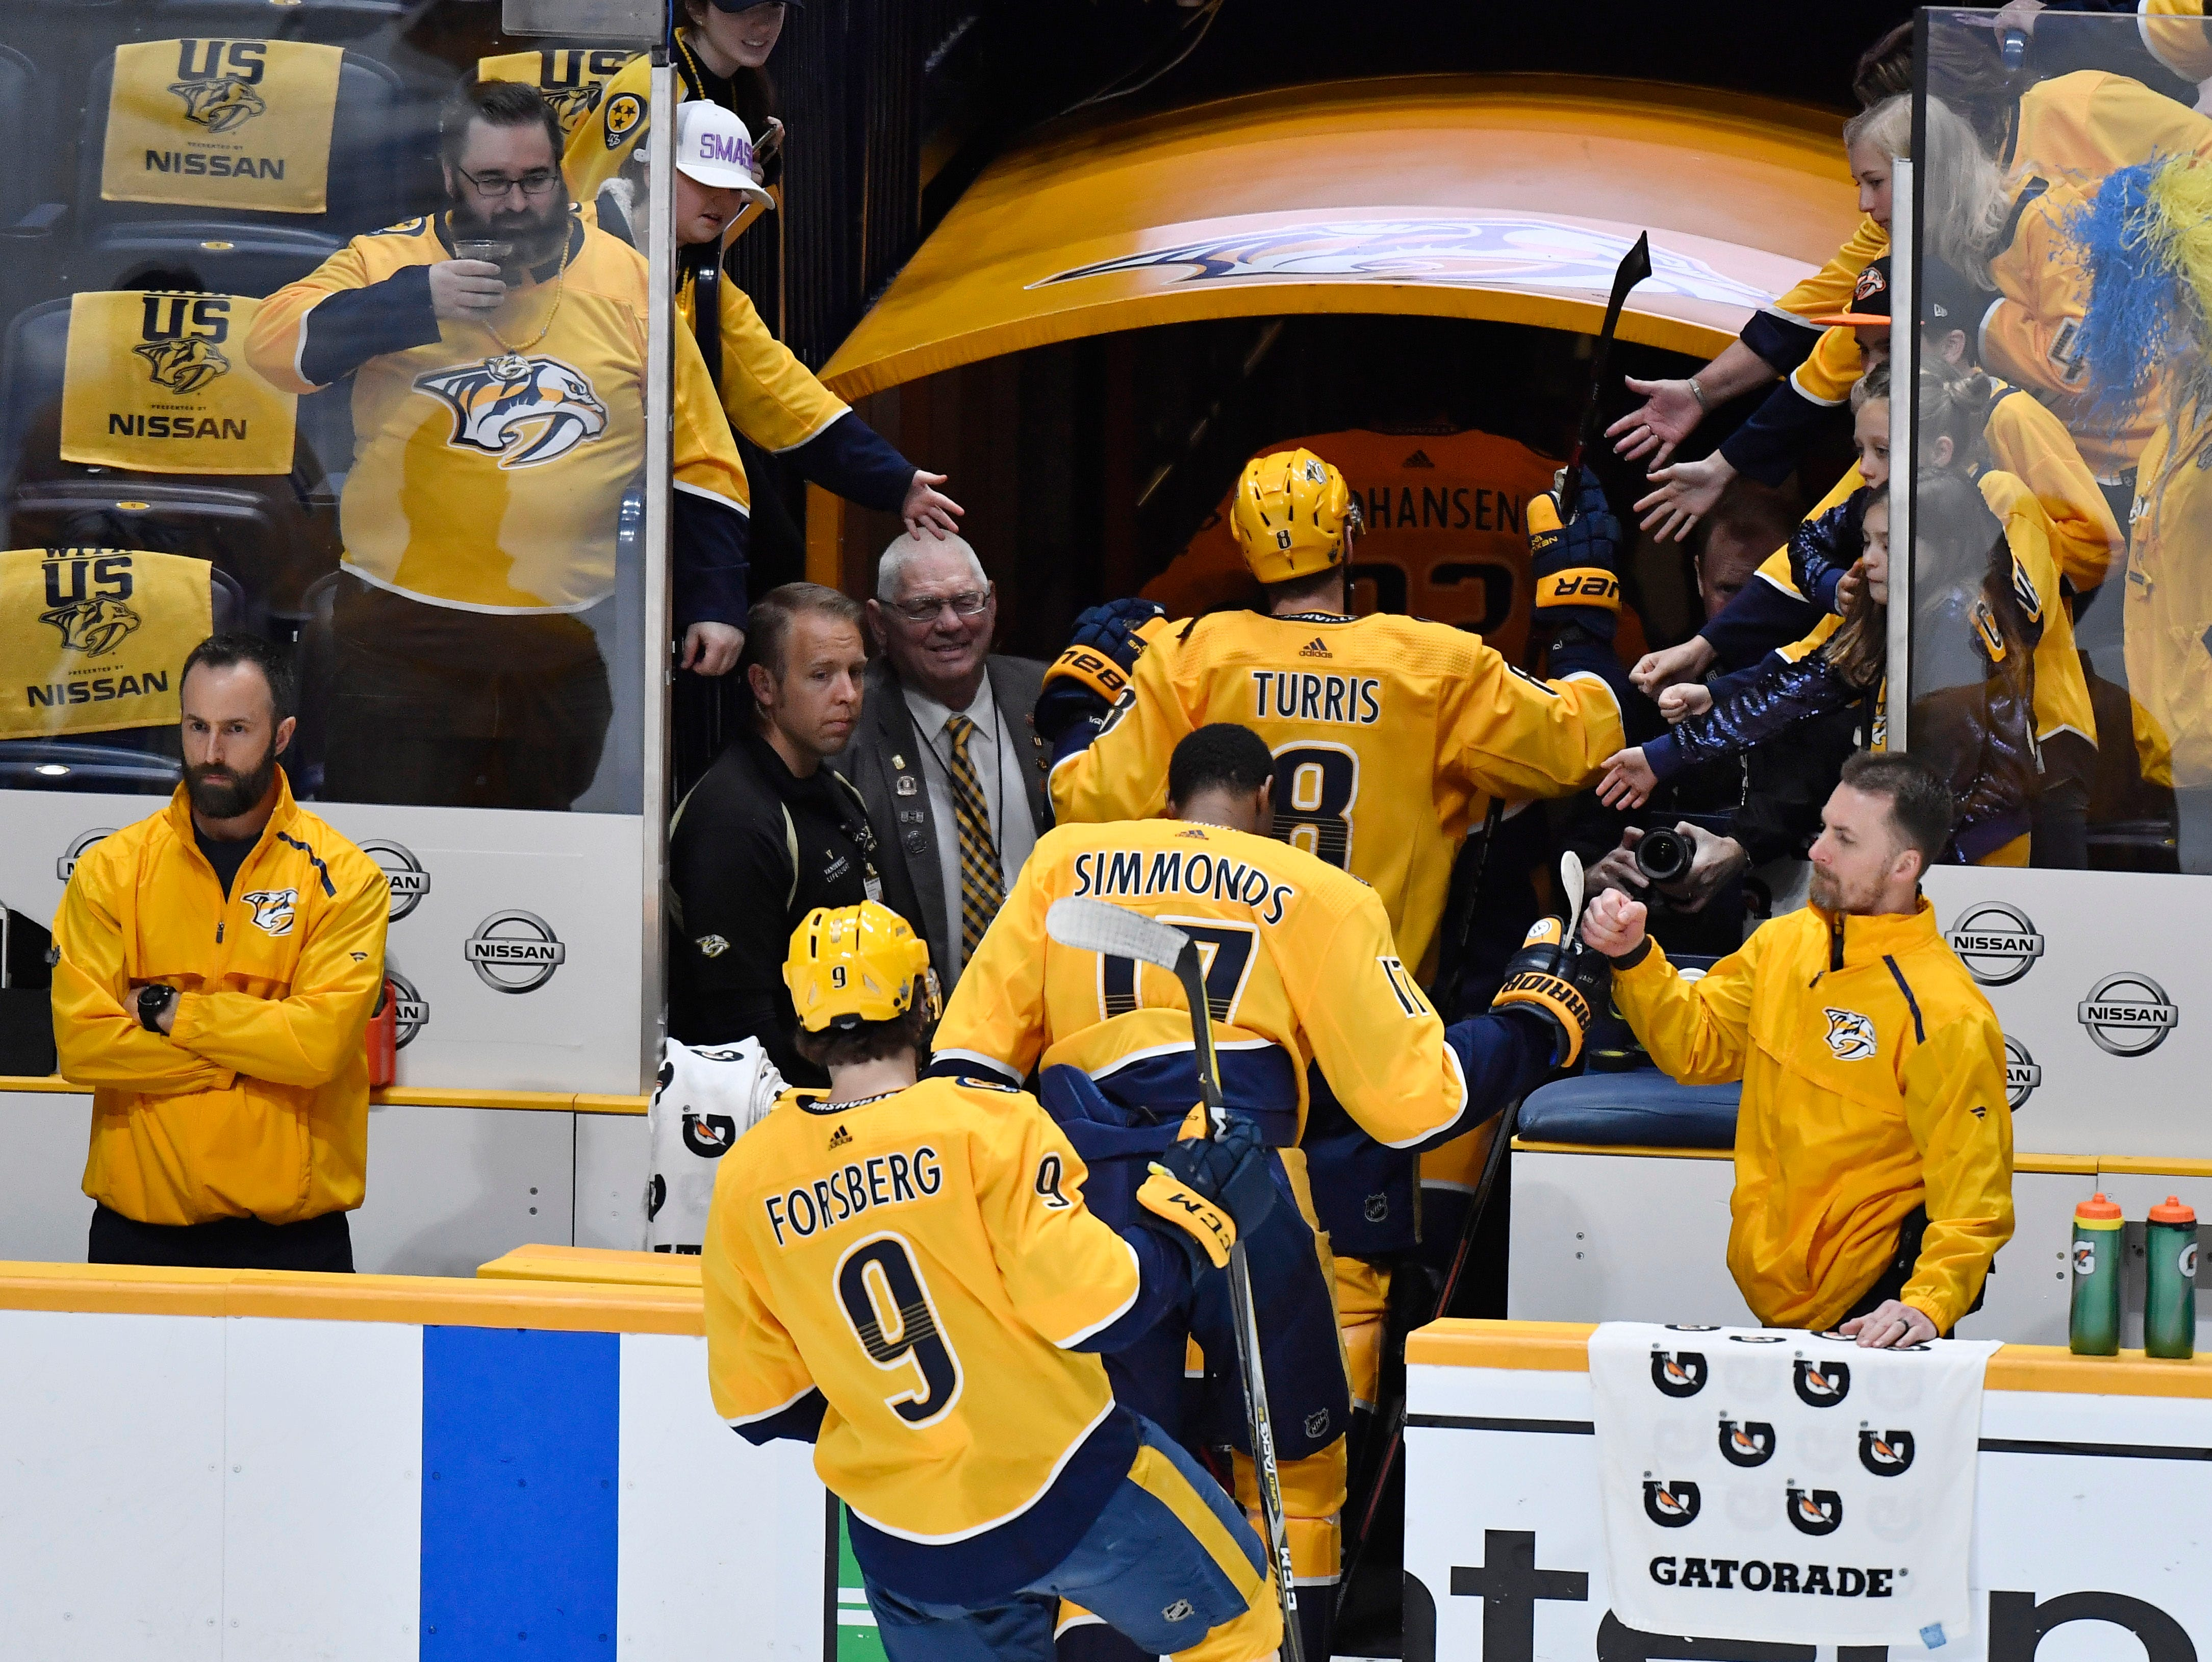 The Predators leave the ice after warmups before their divisional semifinal game against the Stars at Bridgestone Arena in Nashville, Tenn., Saturday, April 13, 2019.